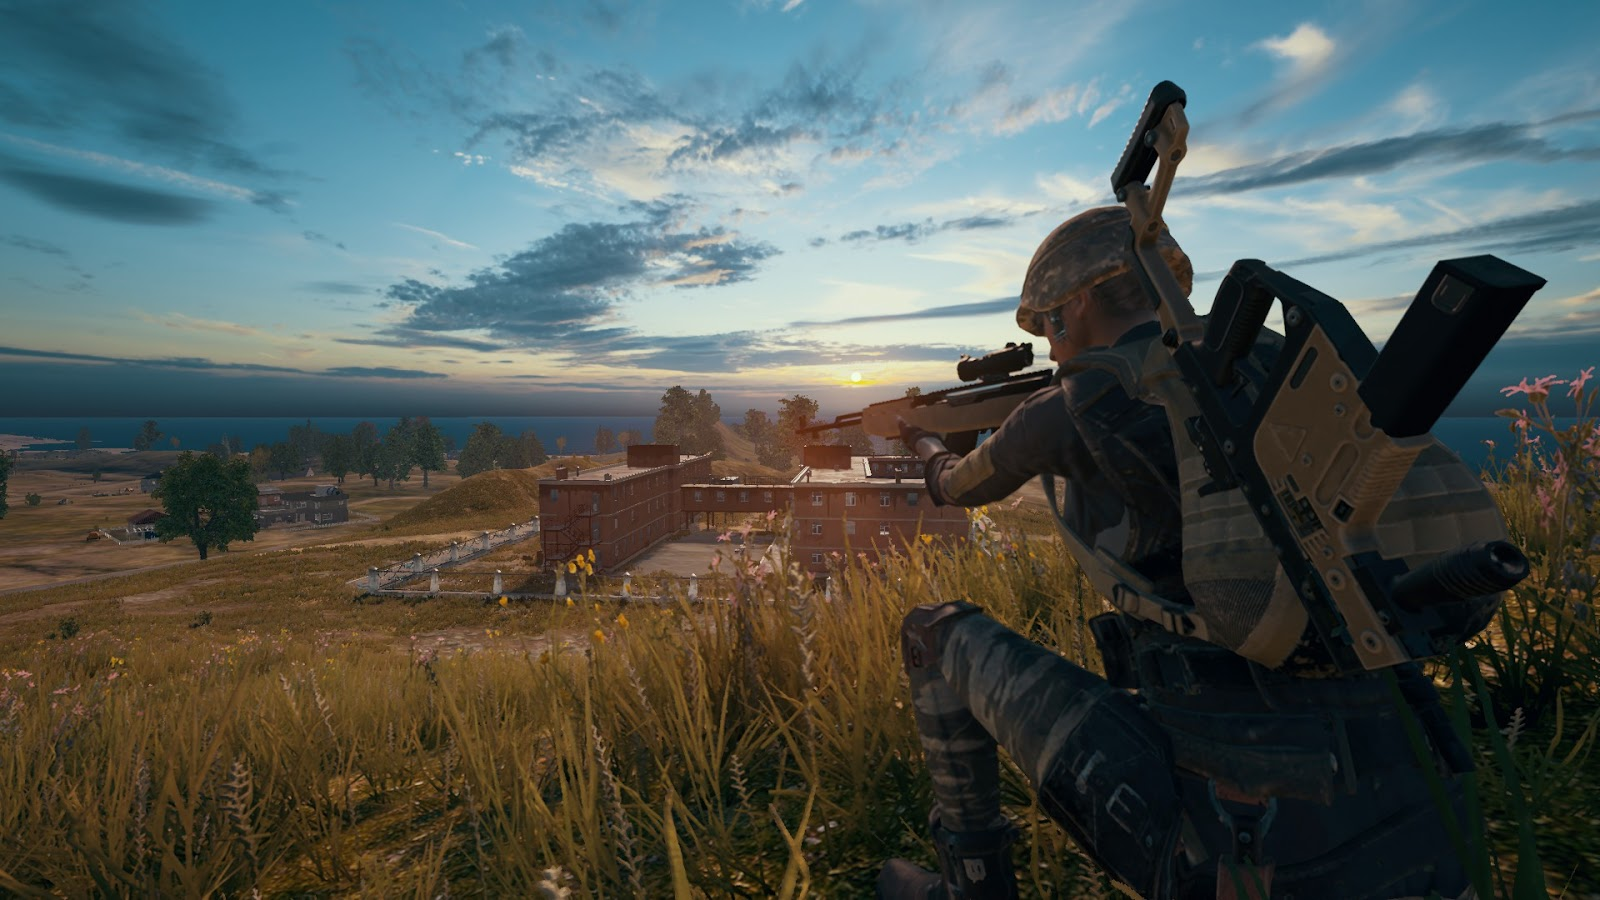 Pubg Hd Pics For Mobile: PUBG 4K ULTRA HD WALLPAPERS FOR PC AND MOBILE